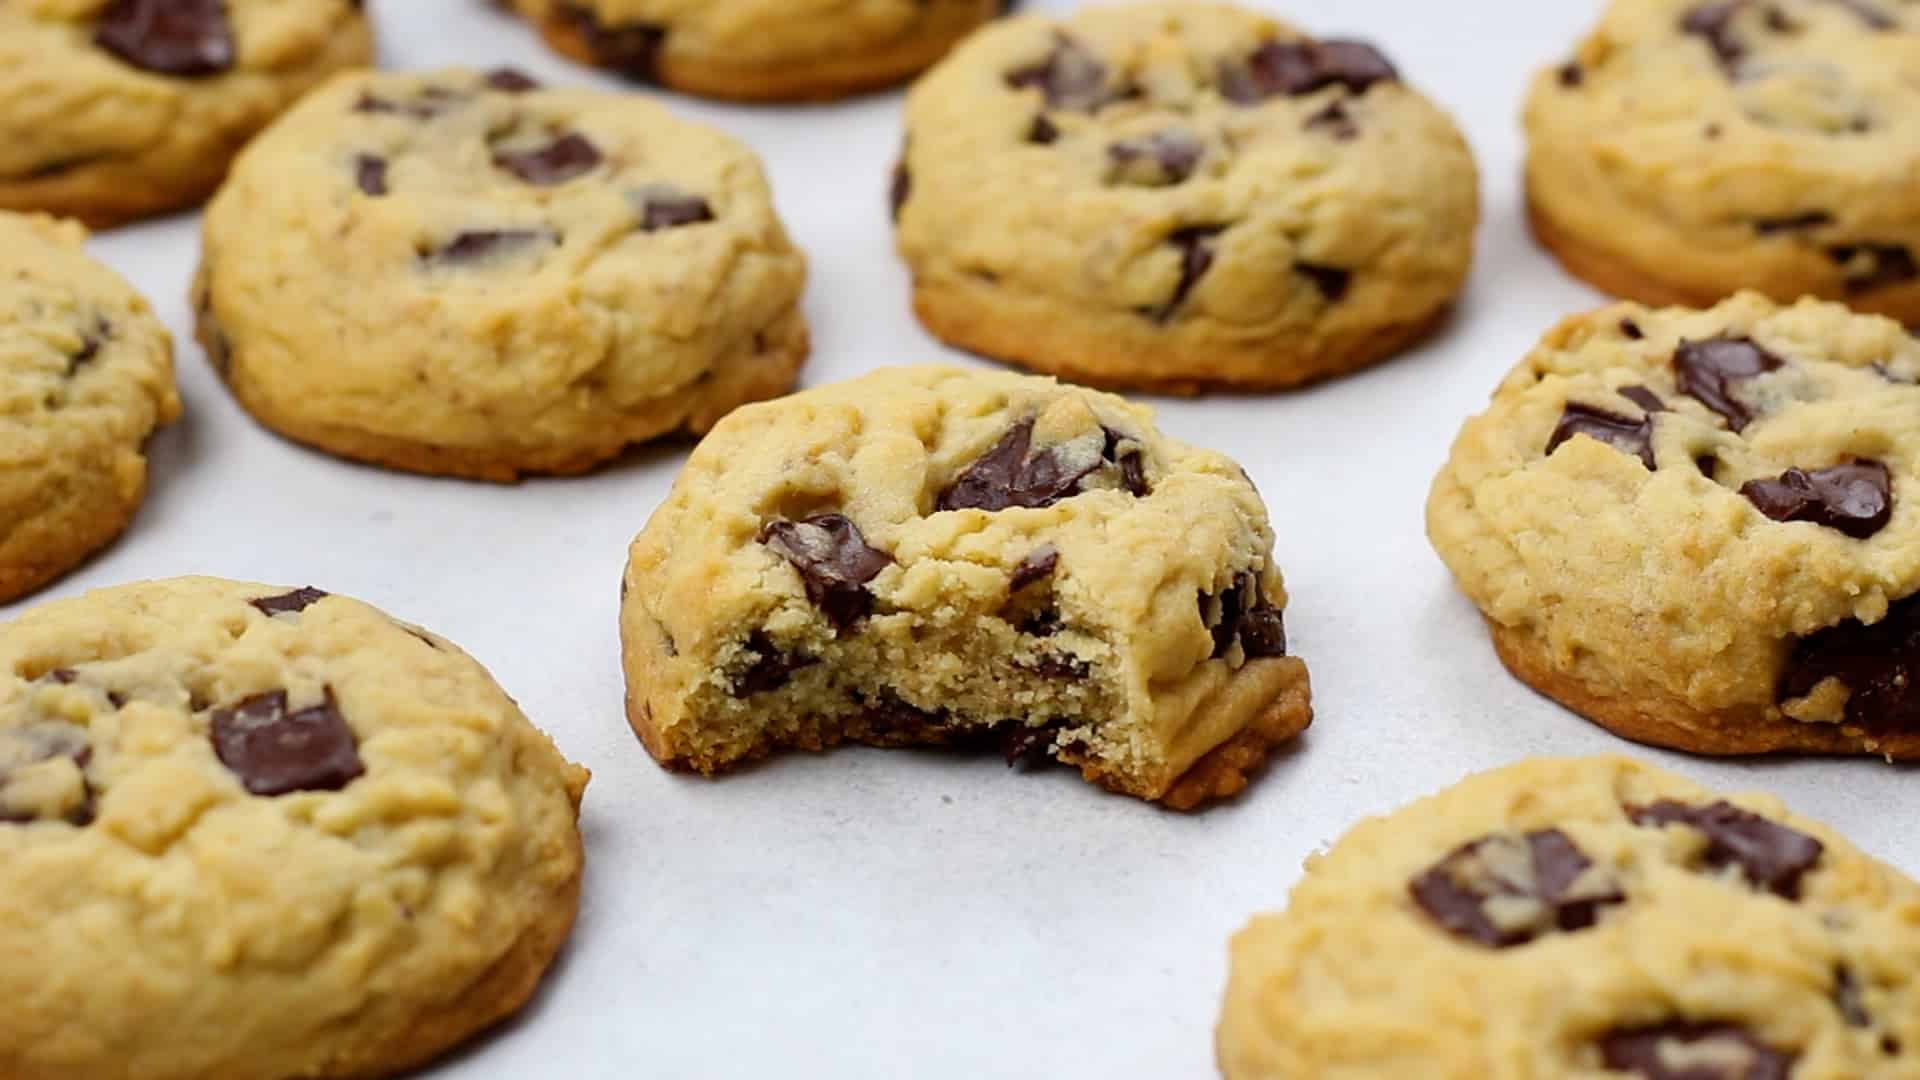 Chocolate Chip Cookies on a white table.